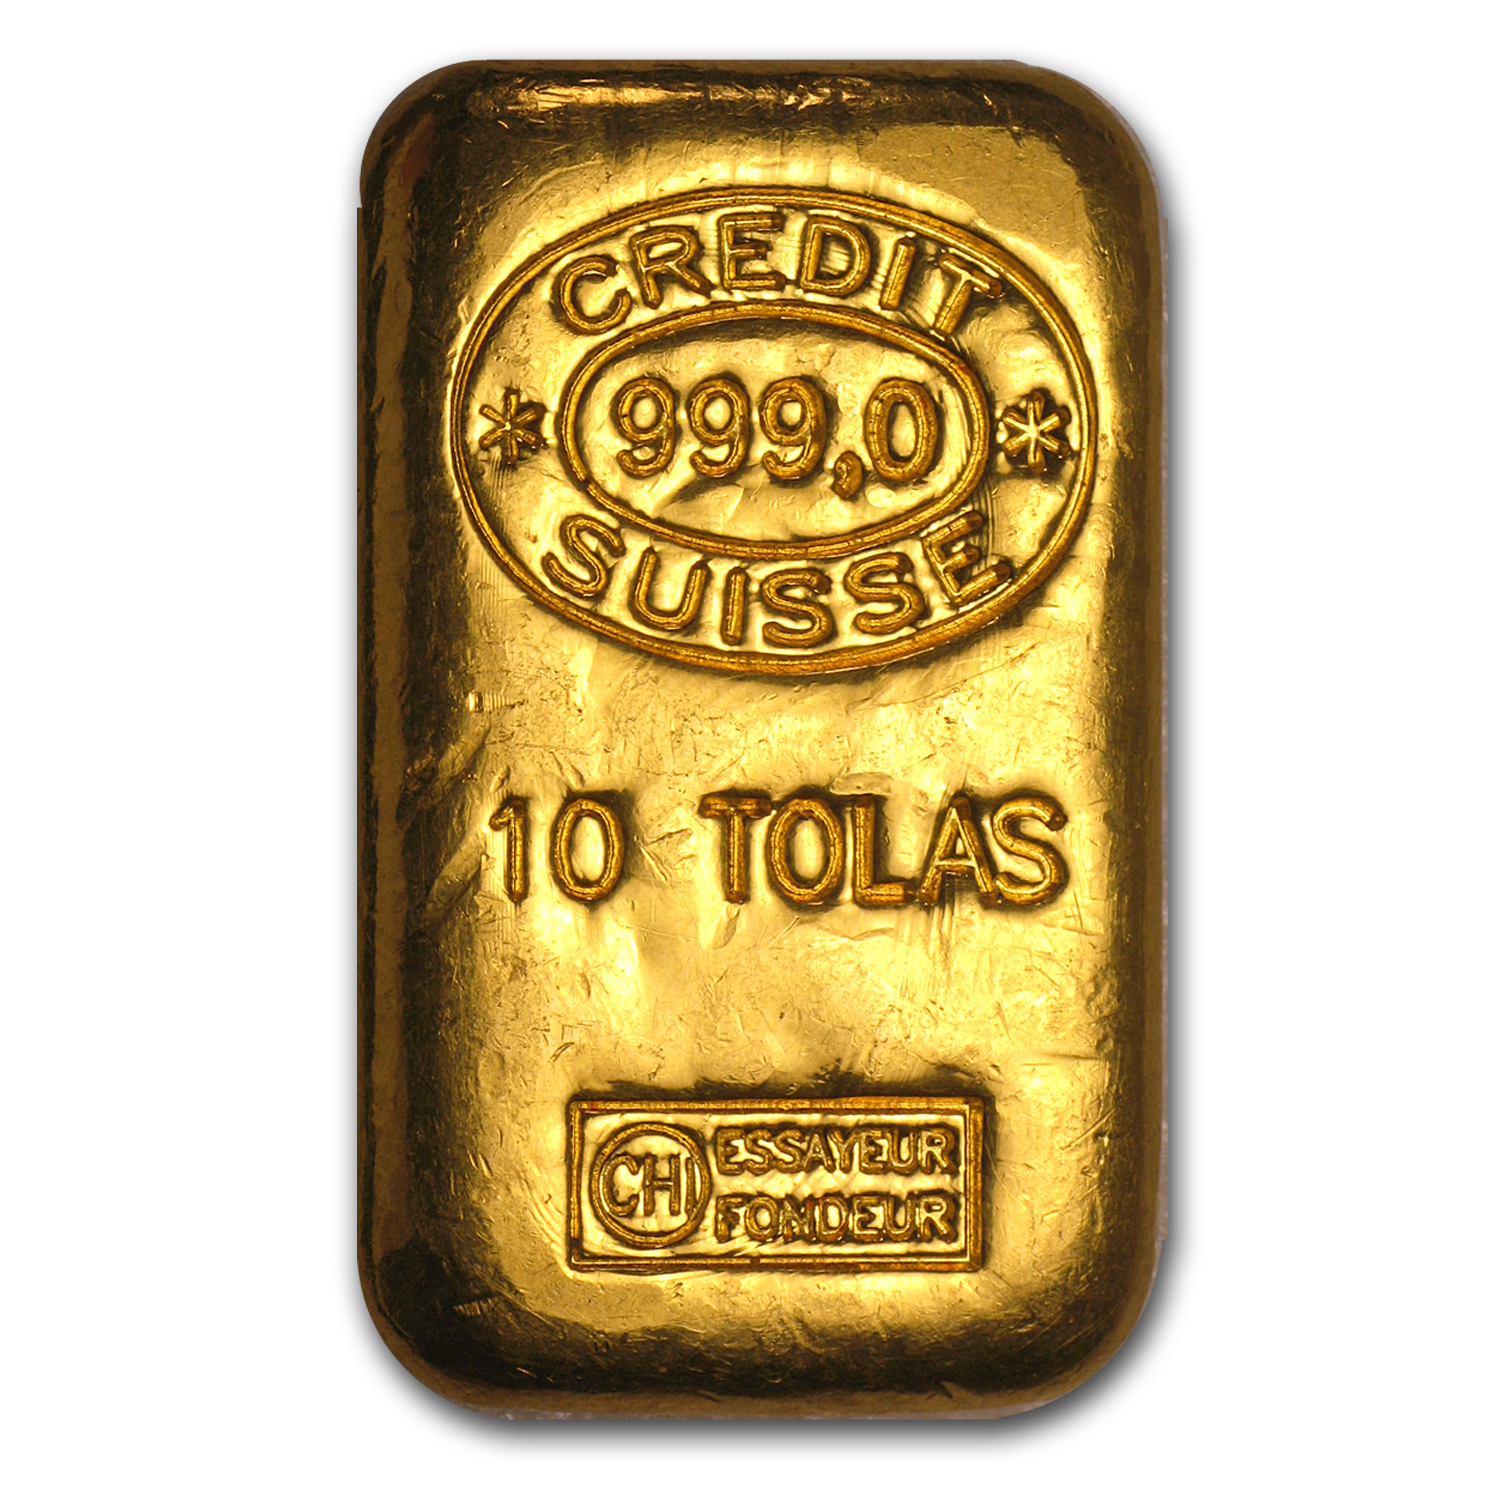 10 Tolas Gold Bars - Credit Suisse (3.75 oz)